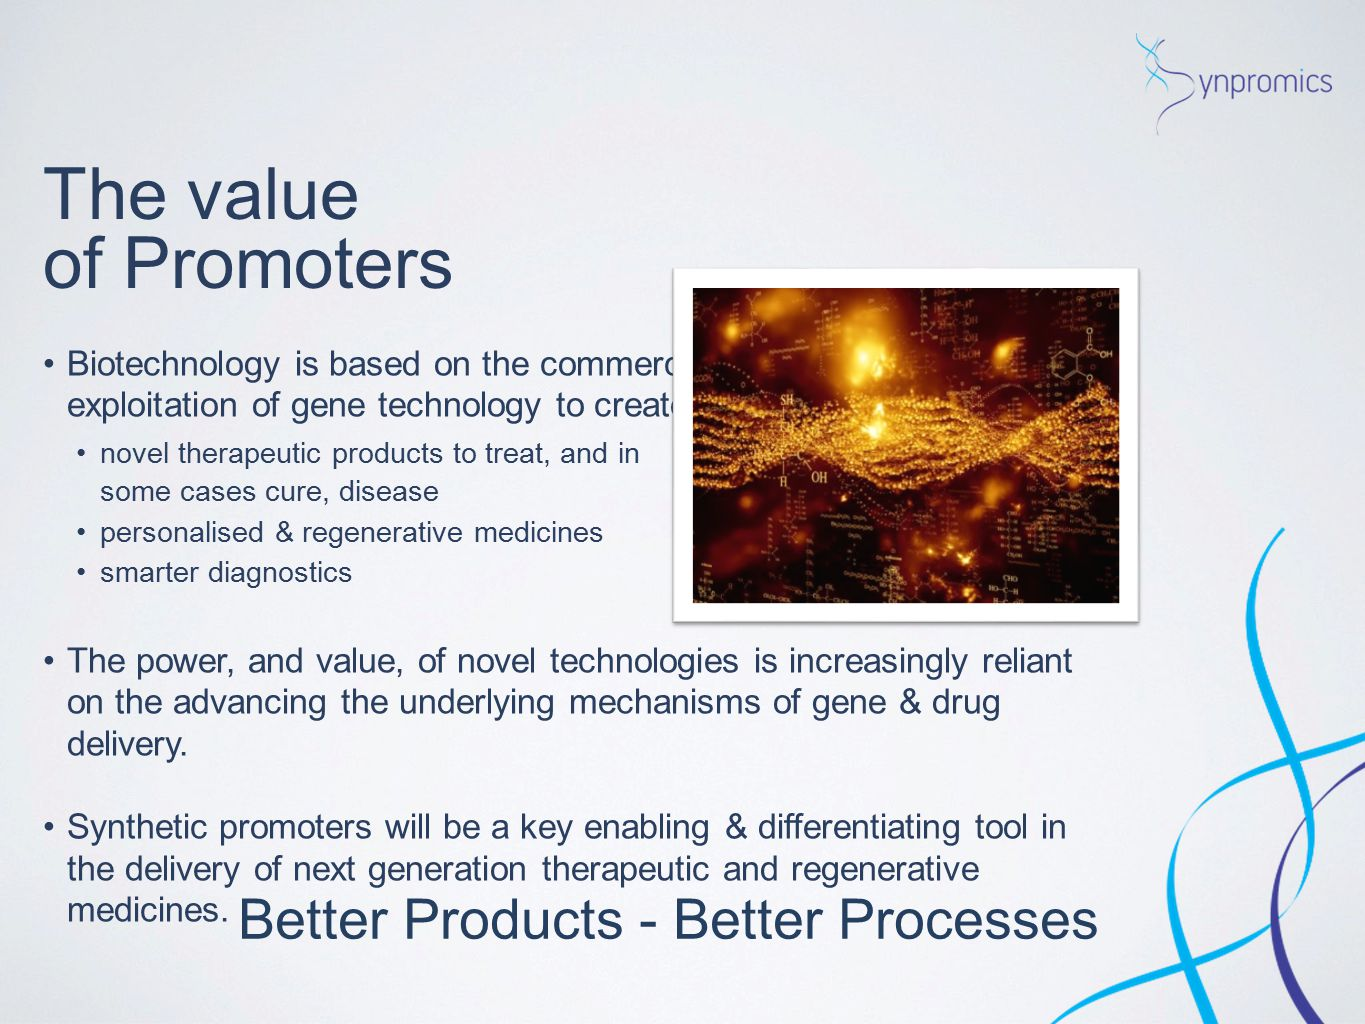 Better Products - Better Processes